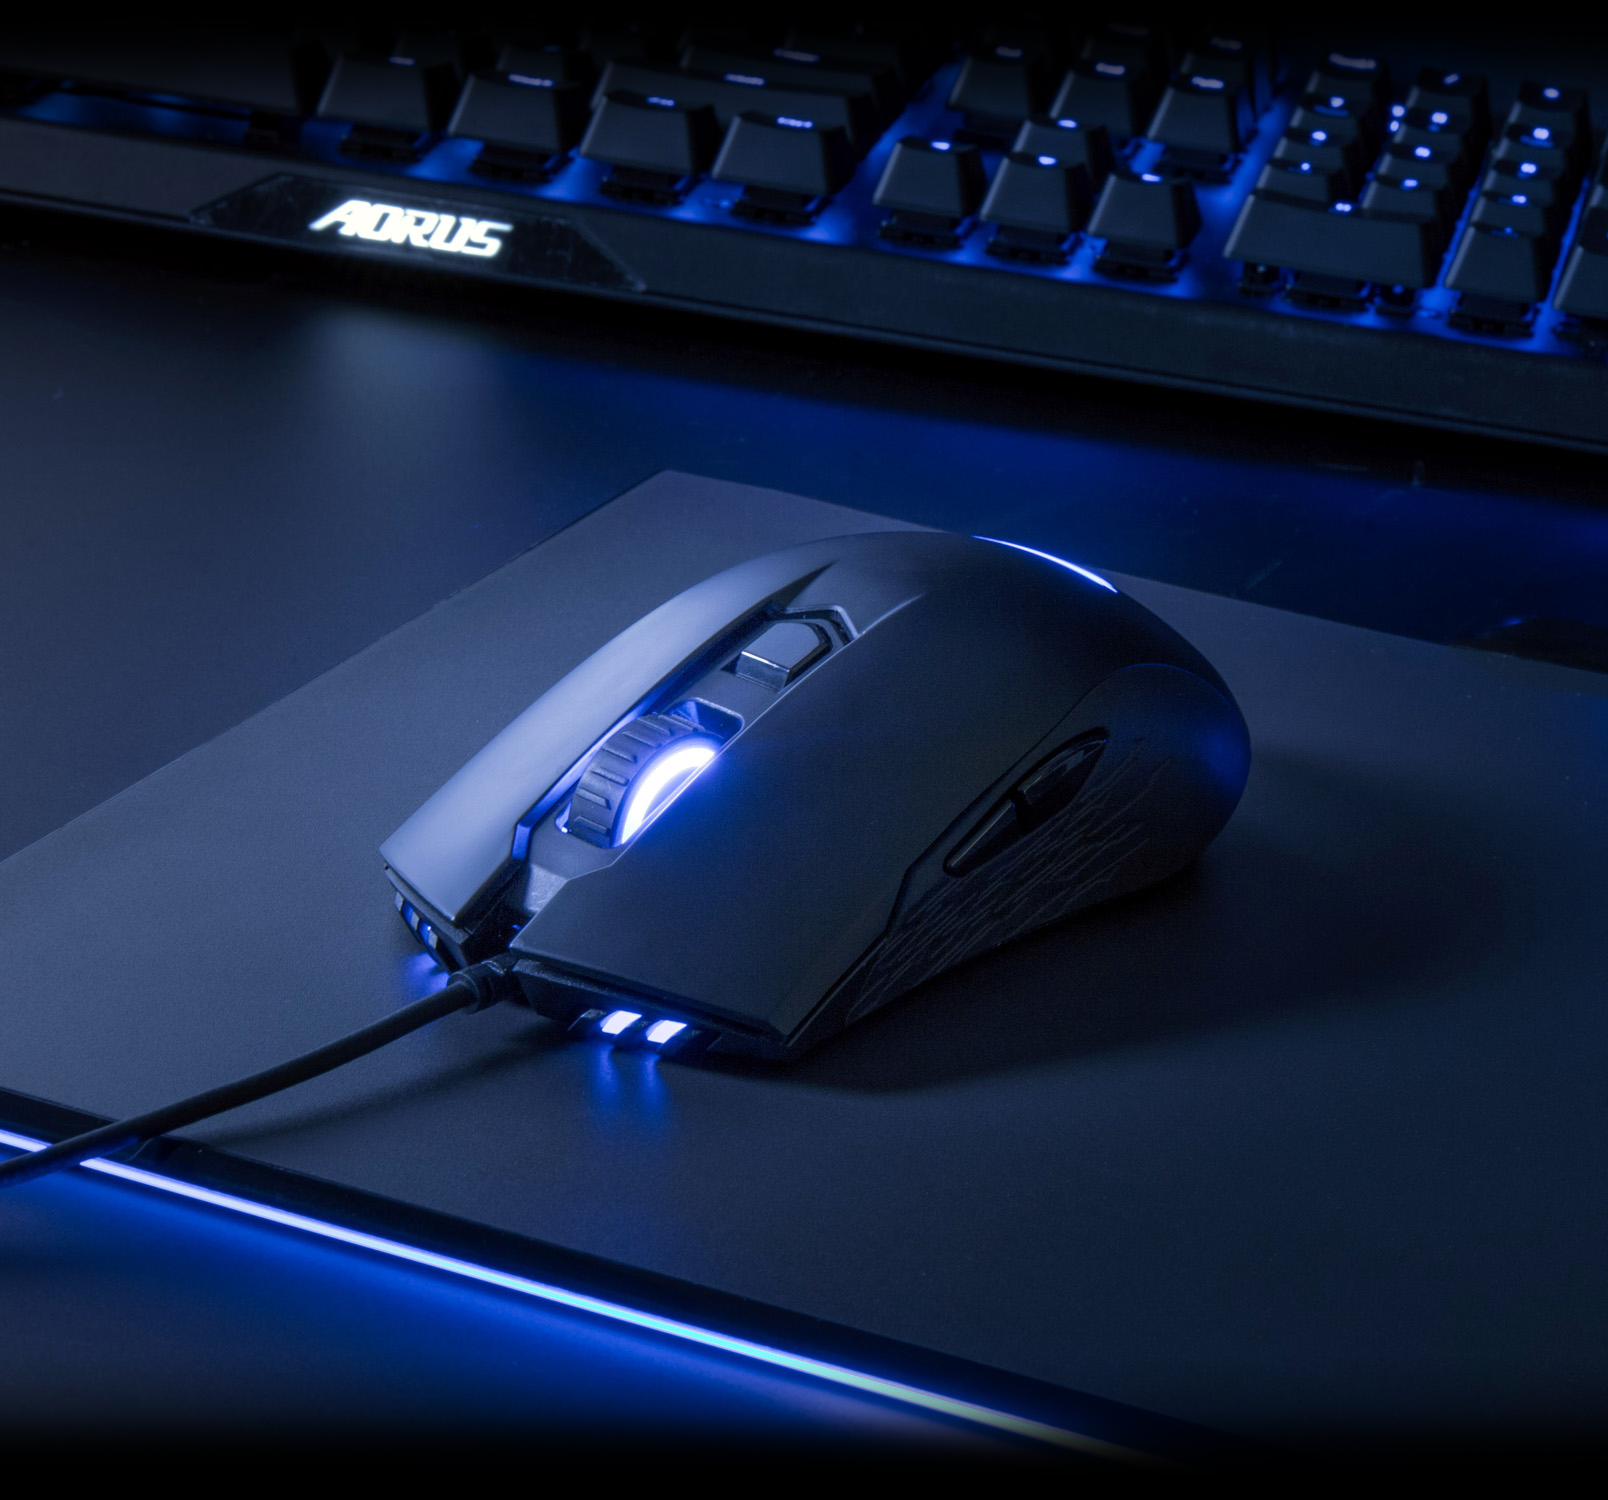 Gigabyte AORUS RGB 6400 DPI Optical Sensor Fully Programmable and Saved Onboard Gaming Mouse GM-AORUS M4